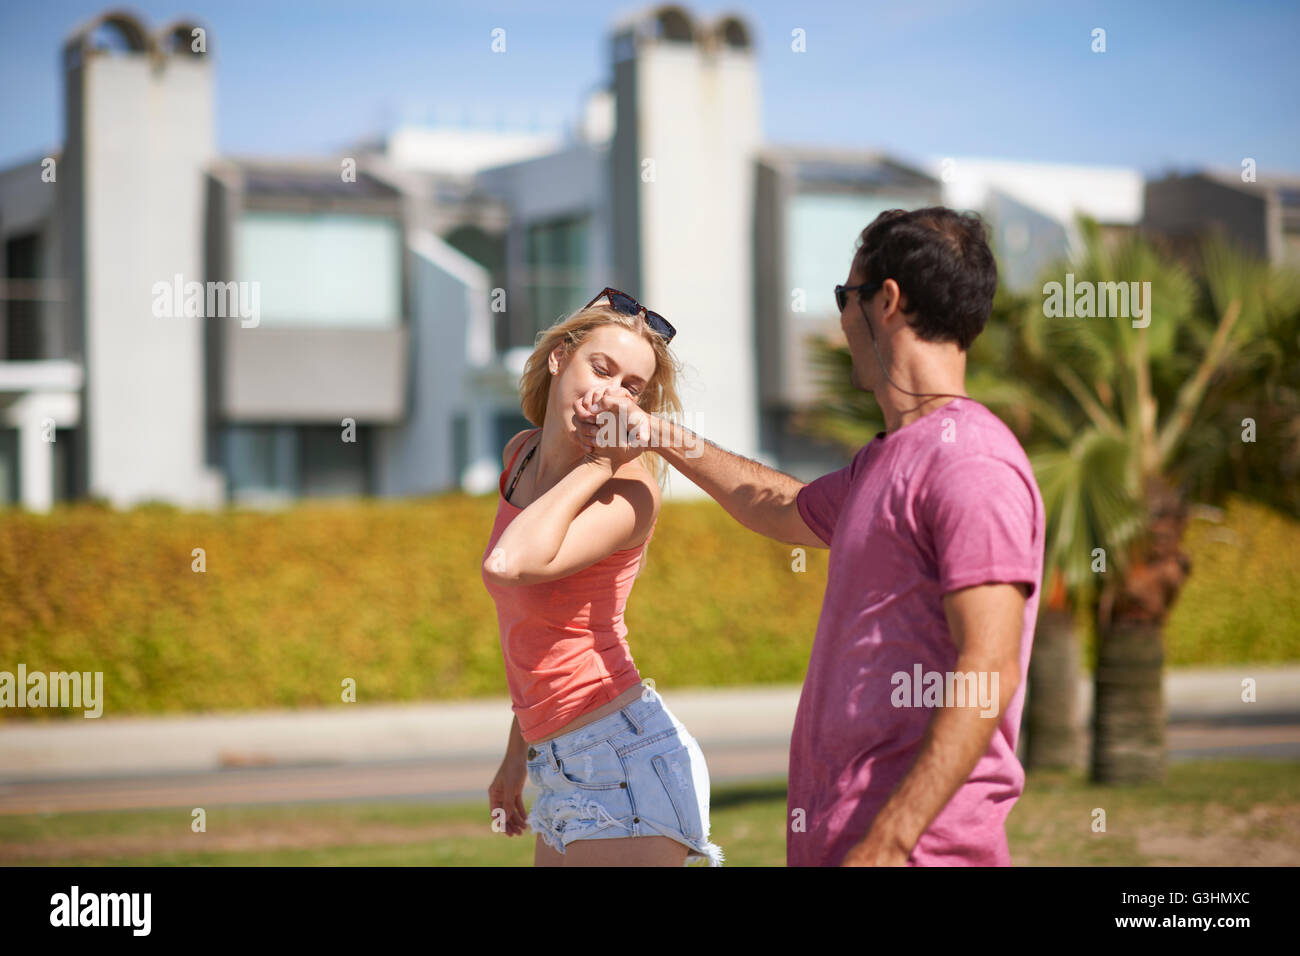 Kiss why woman hand man Why do